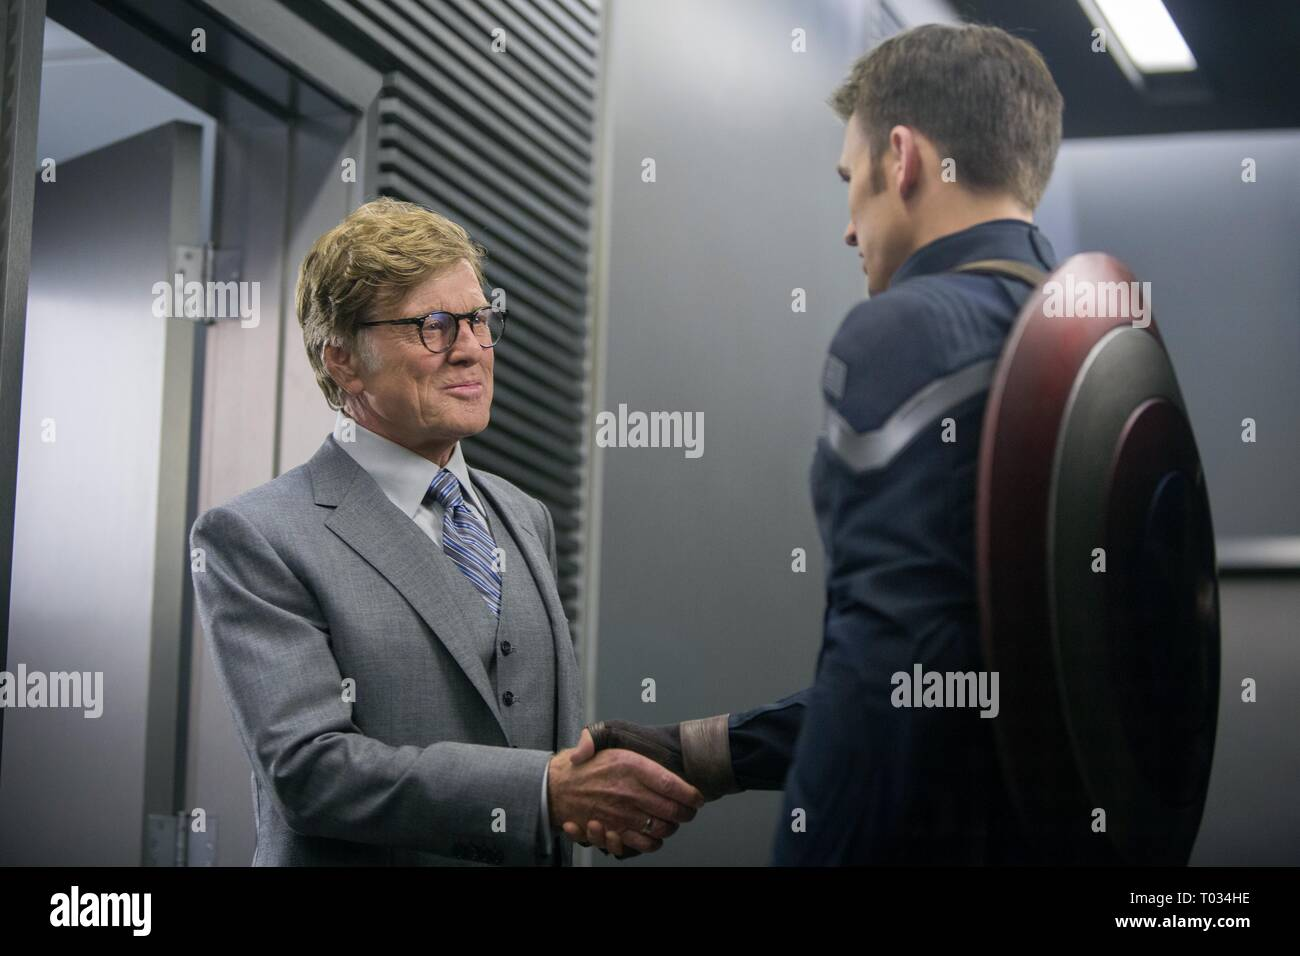 ROBERT REDFORD, CHRIS EVANS, CAPTAIN AMERICA: THE WINTER SOLDIER, 2014 - Stock Image